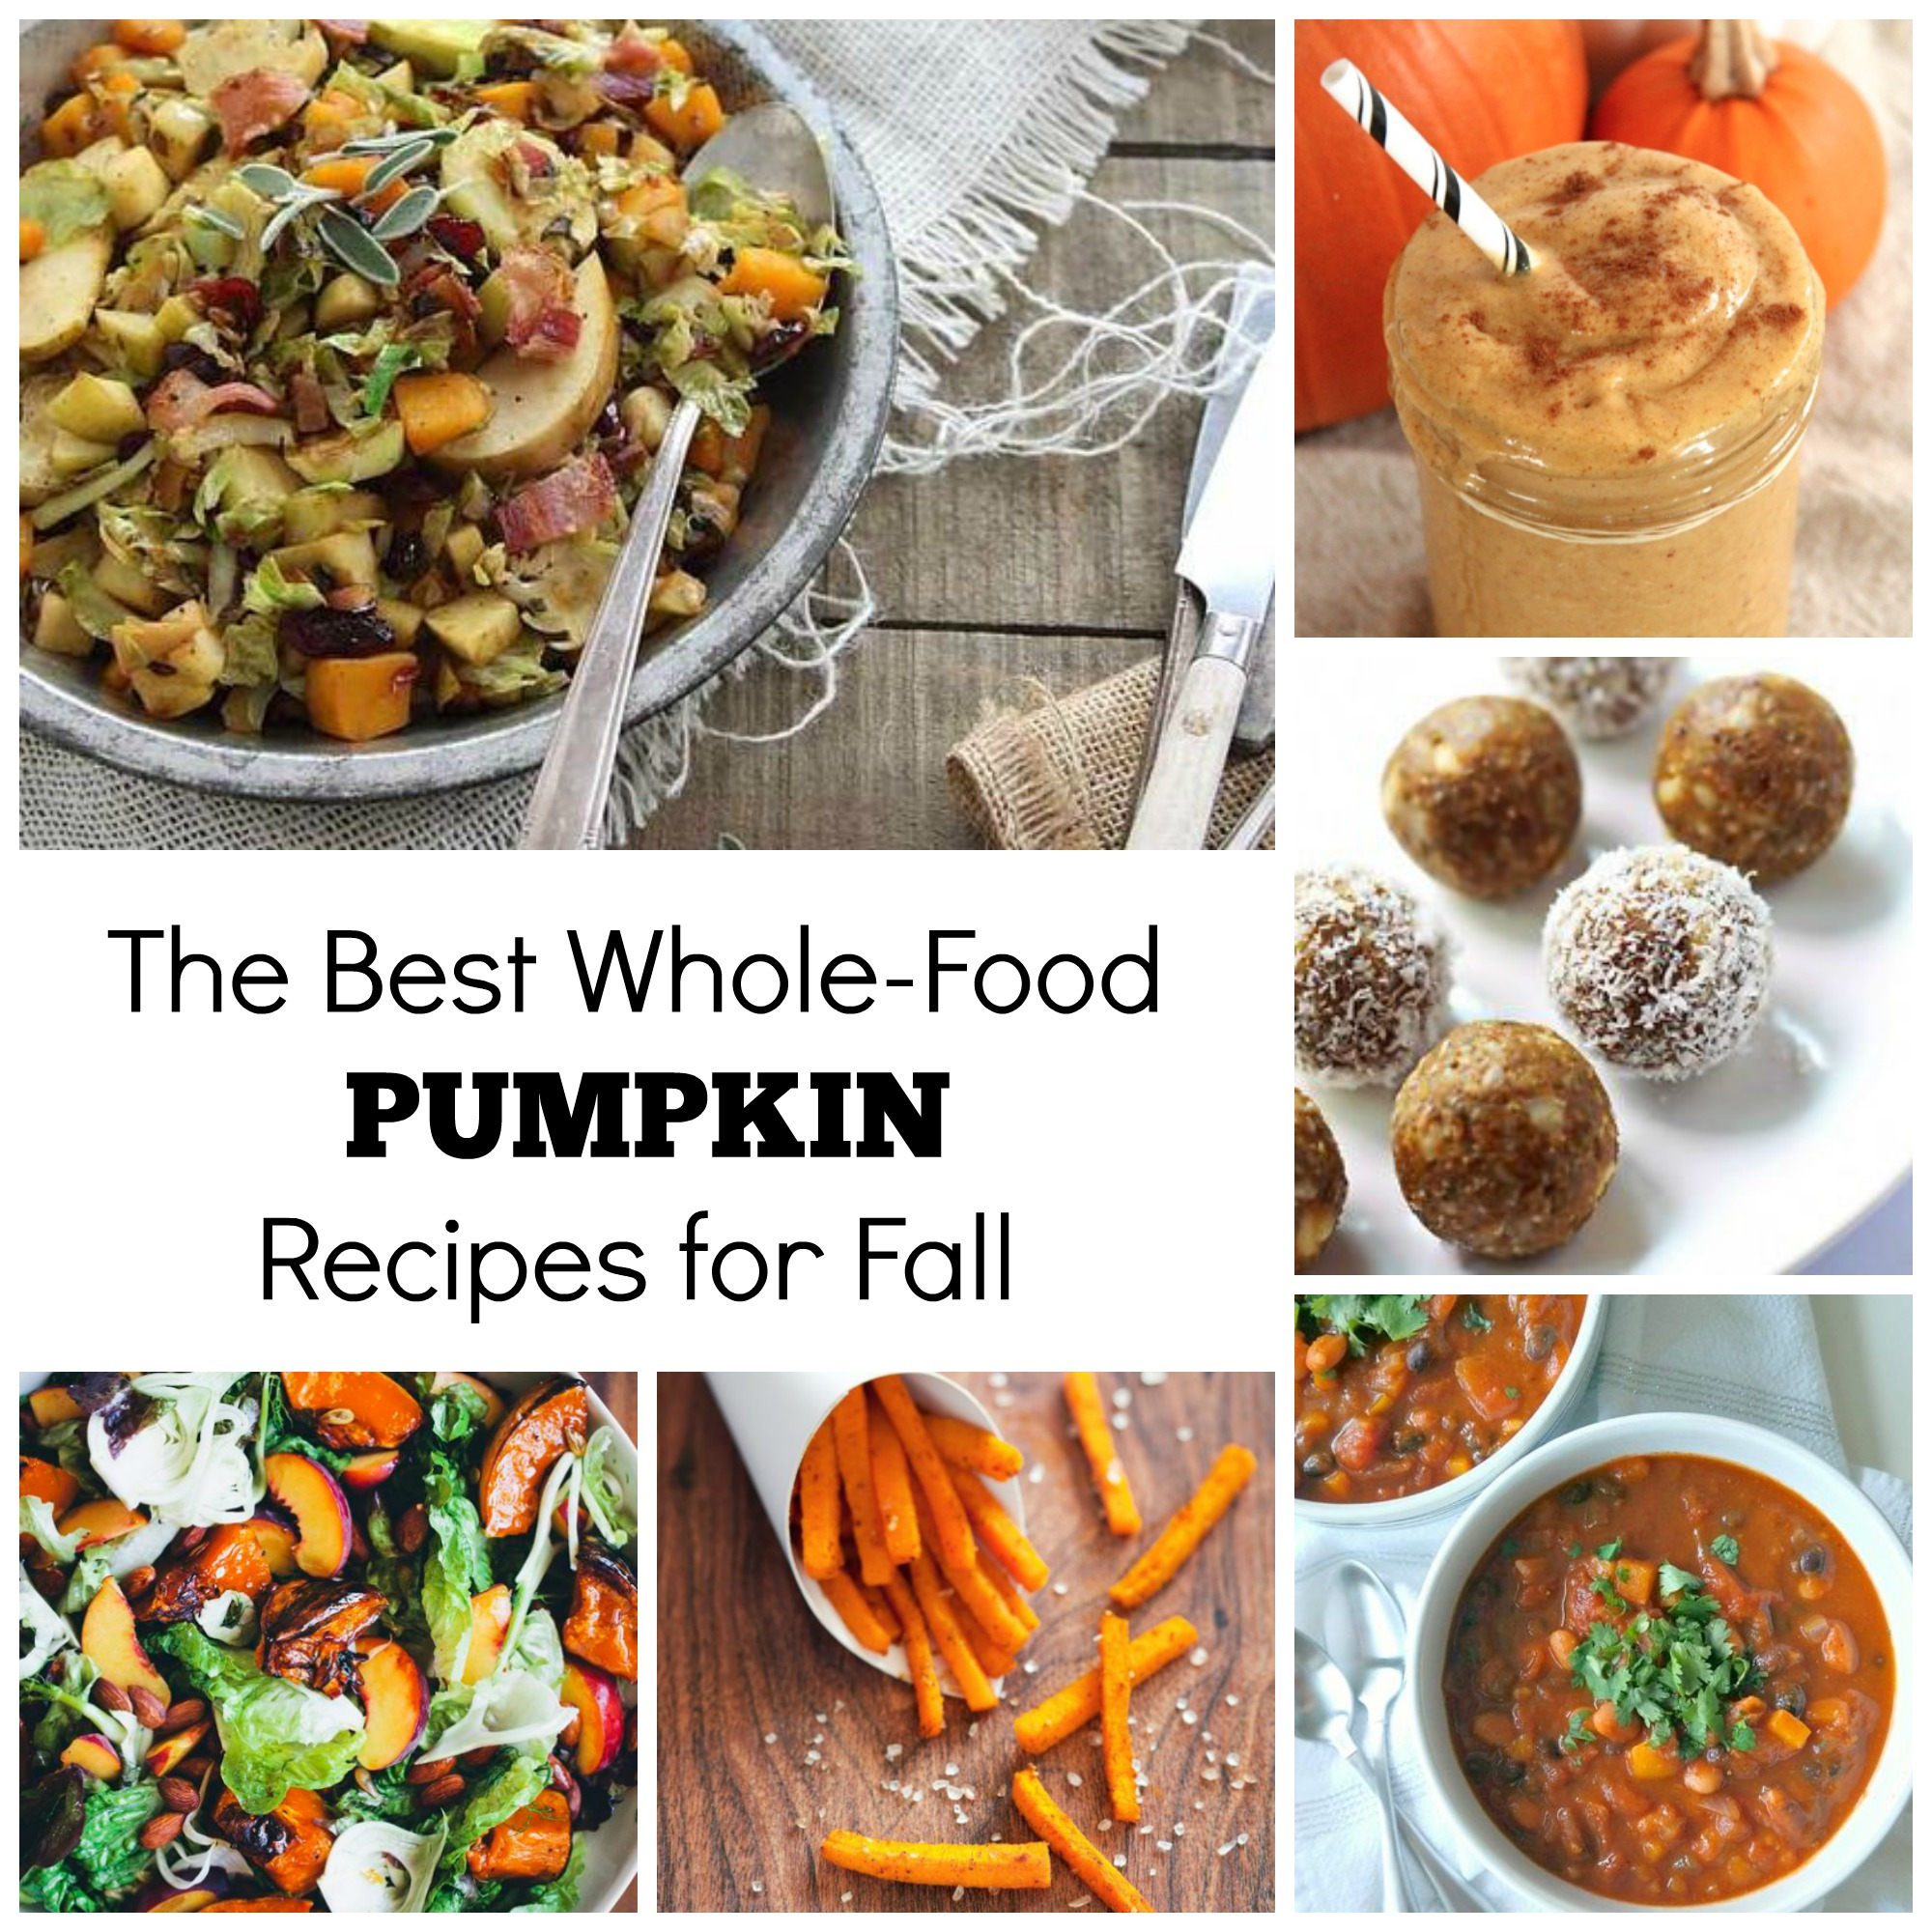 Exercise coach blog one of the best things about fall is all of the delicious pumpkin recipes we can enjoy pumpkin pies cakes and breads abound during this season forumfinder Image collections